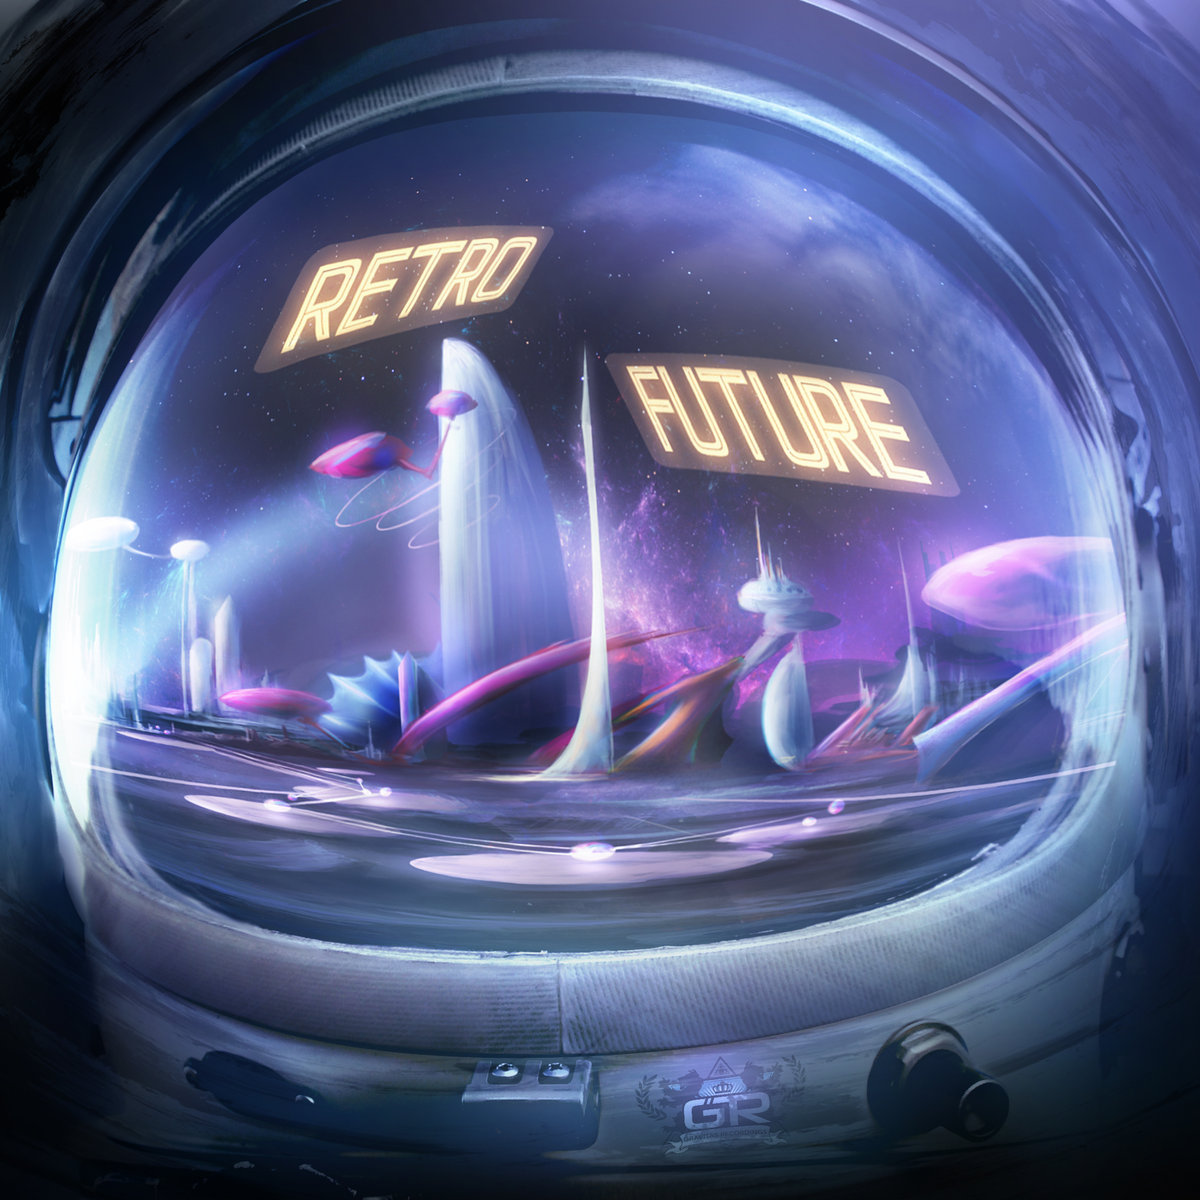 Kendall Clark - Retro Future @ 'Retro Future' album (house, drum and bass)